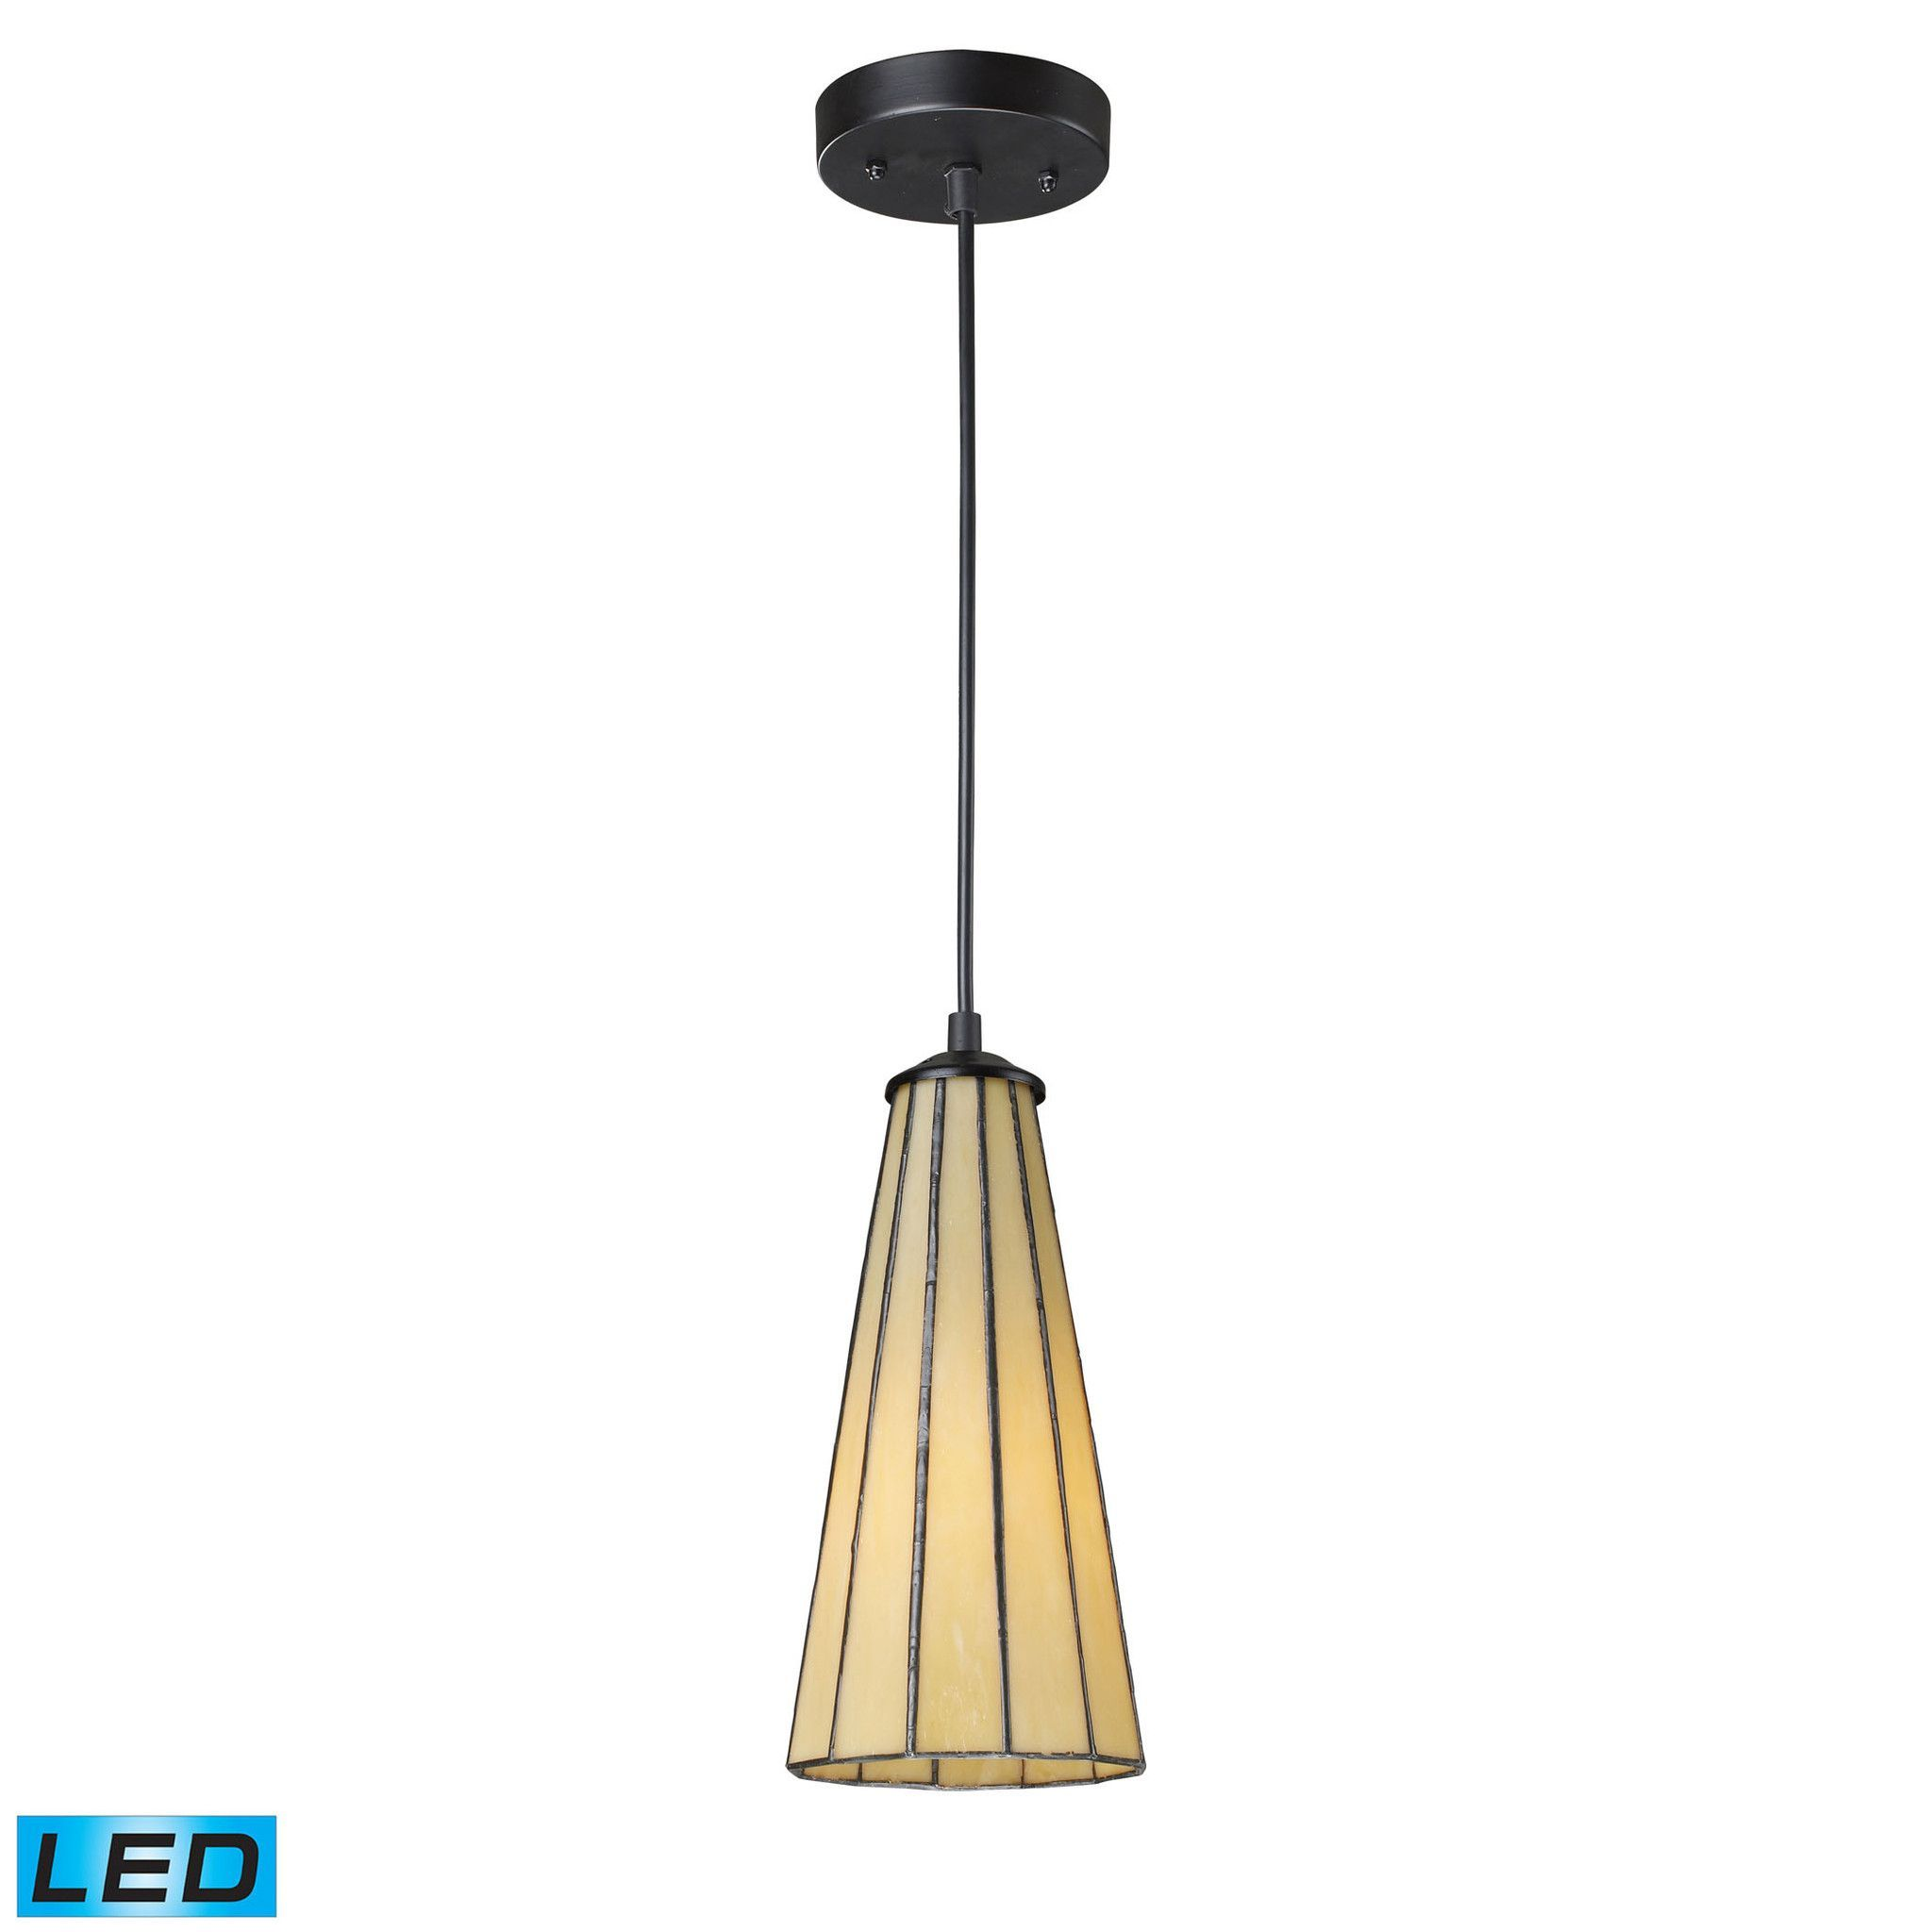 Elk lighting 70000 1hb led lumino collection hazy beigematte black elk lumino 1 light led pendant in matte black and hazy beige pendant item number aloadofball Image collections